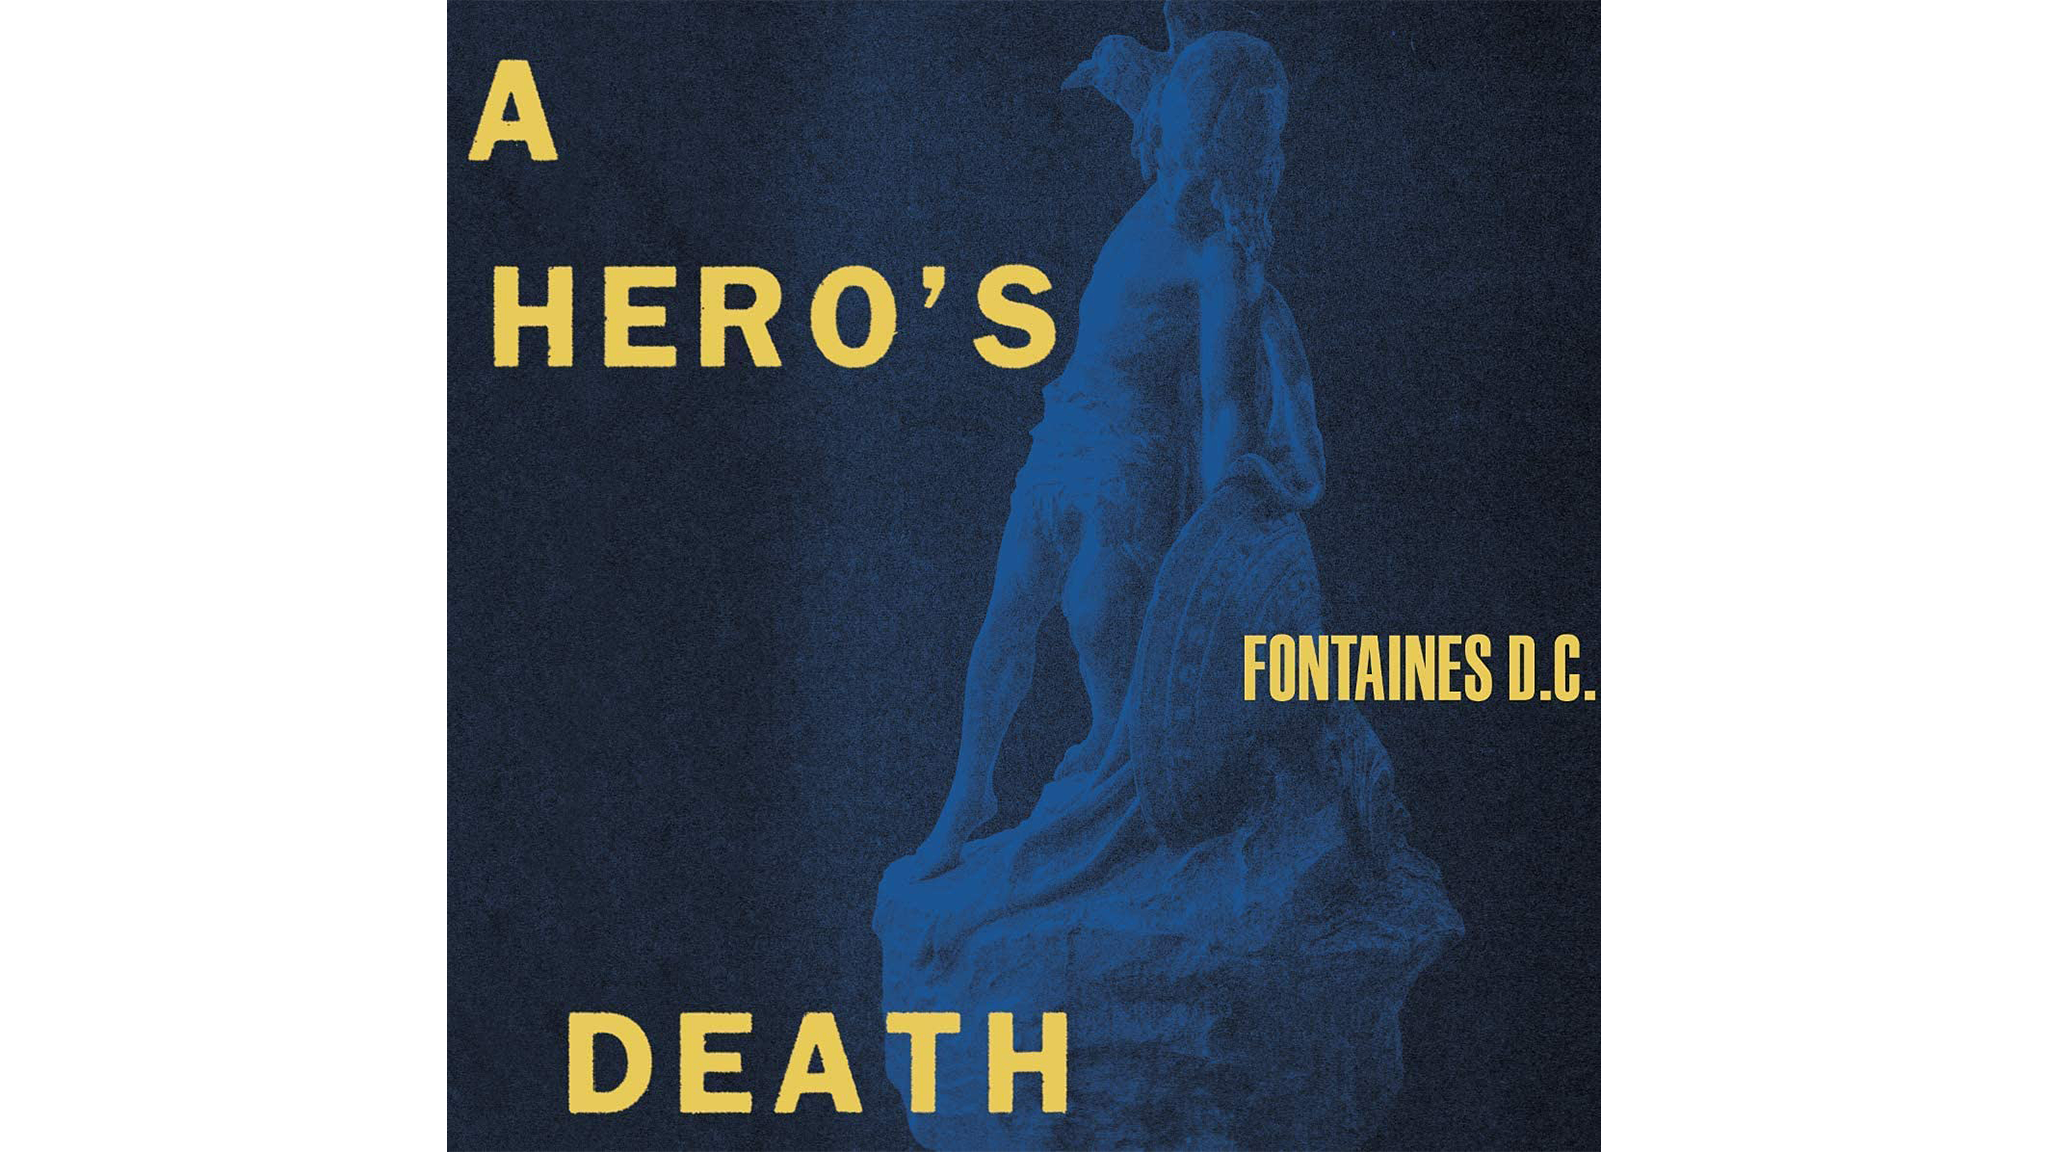 Album cover of 'A Hero's Death' by Fontaines DC